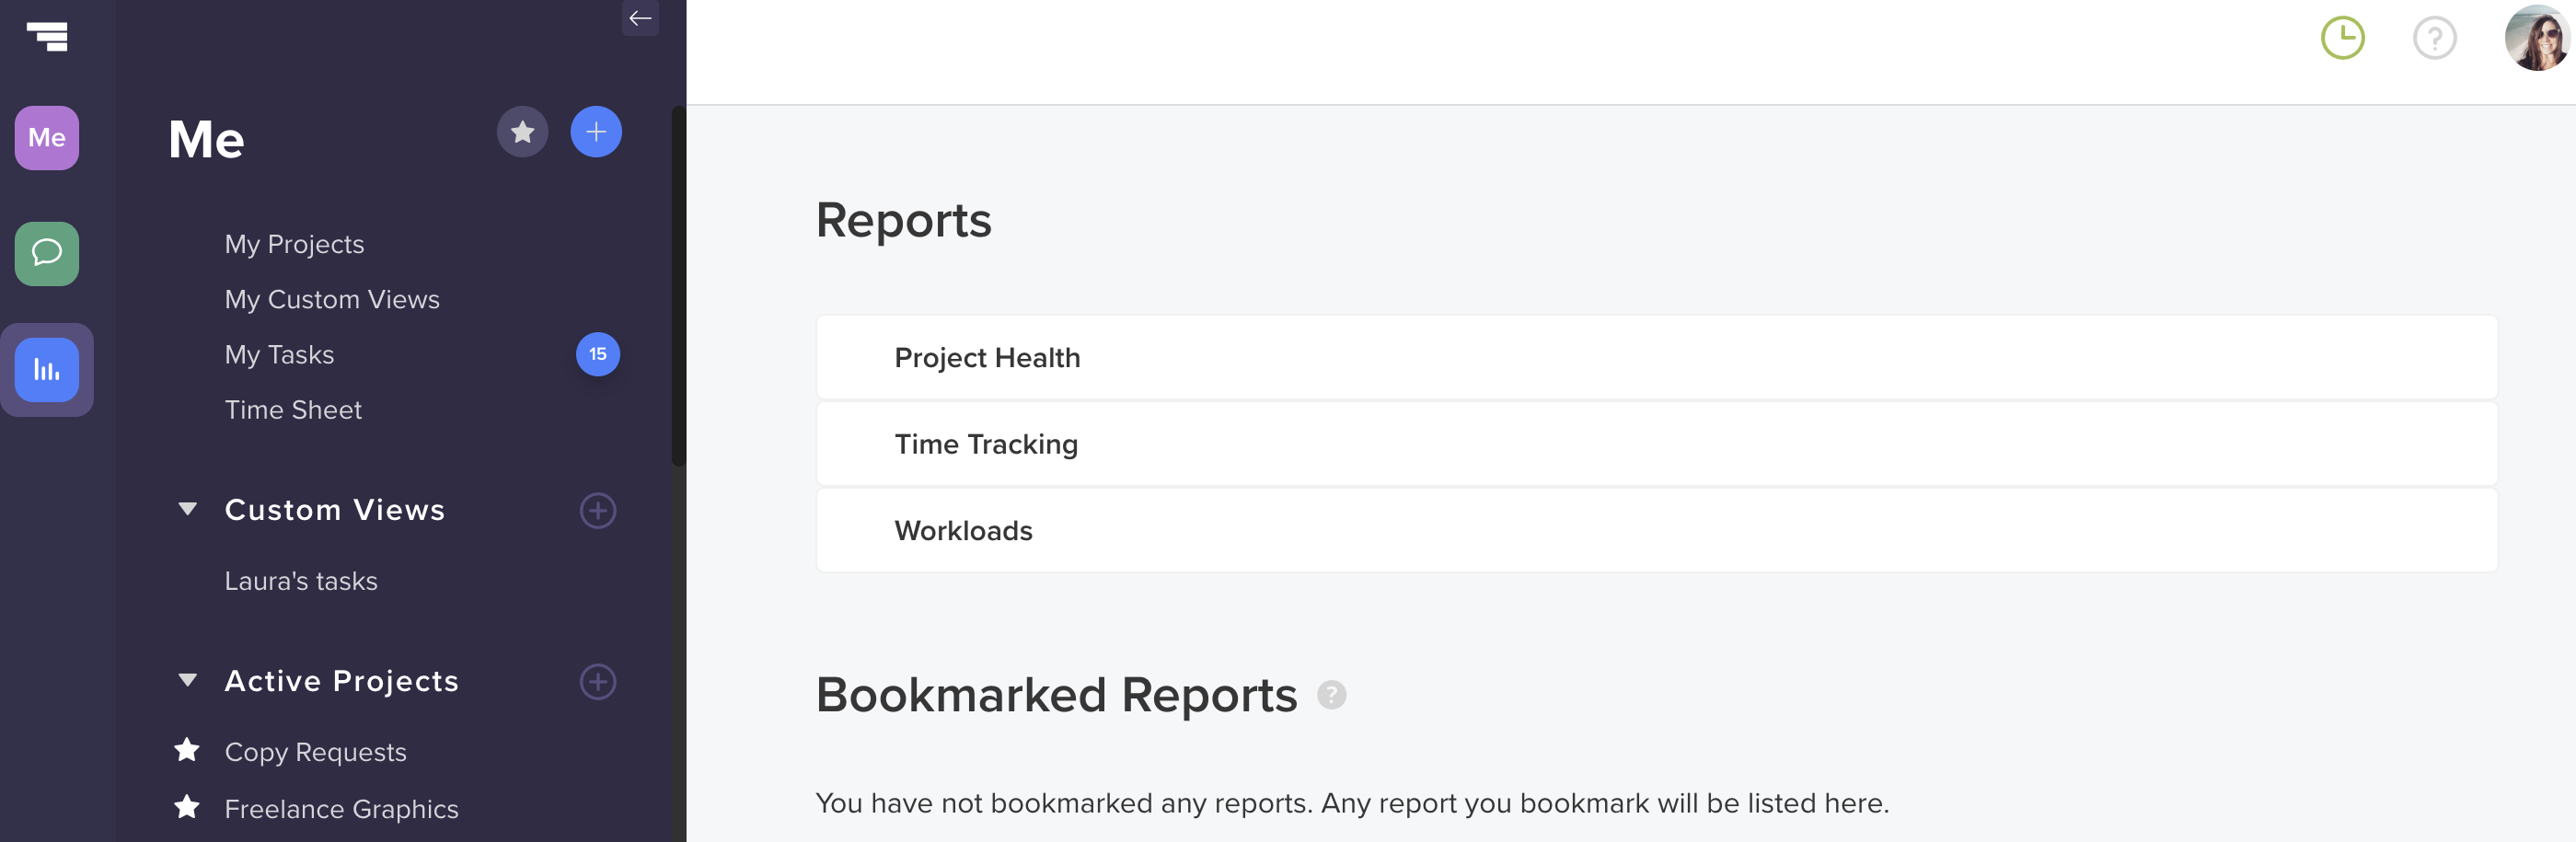 screenshot of new TeamGantt Reports page with Project Health Report, Time Tracking, Workloads, and Bookmarked Reports